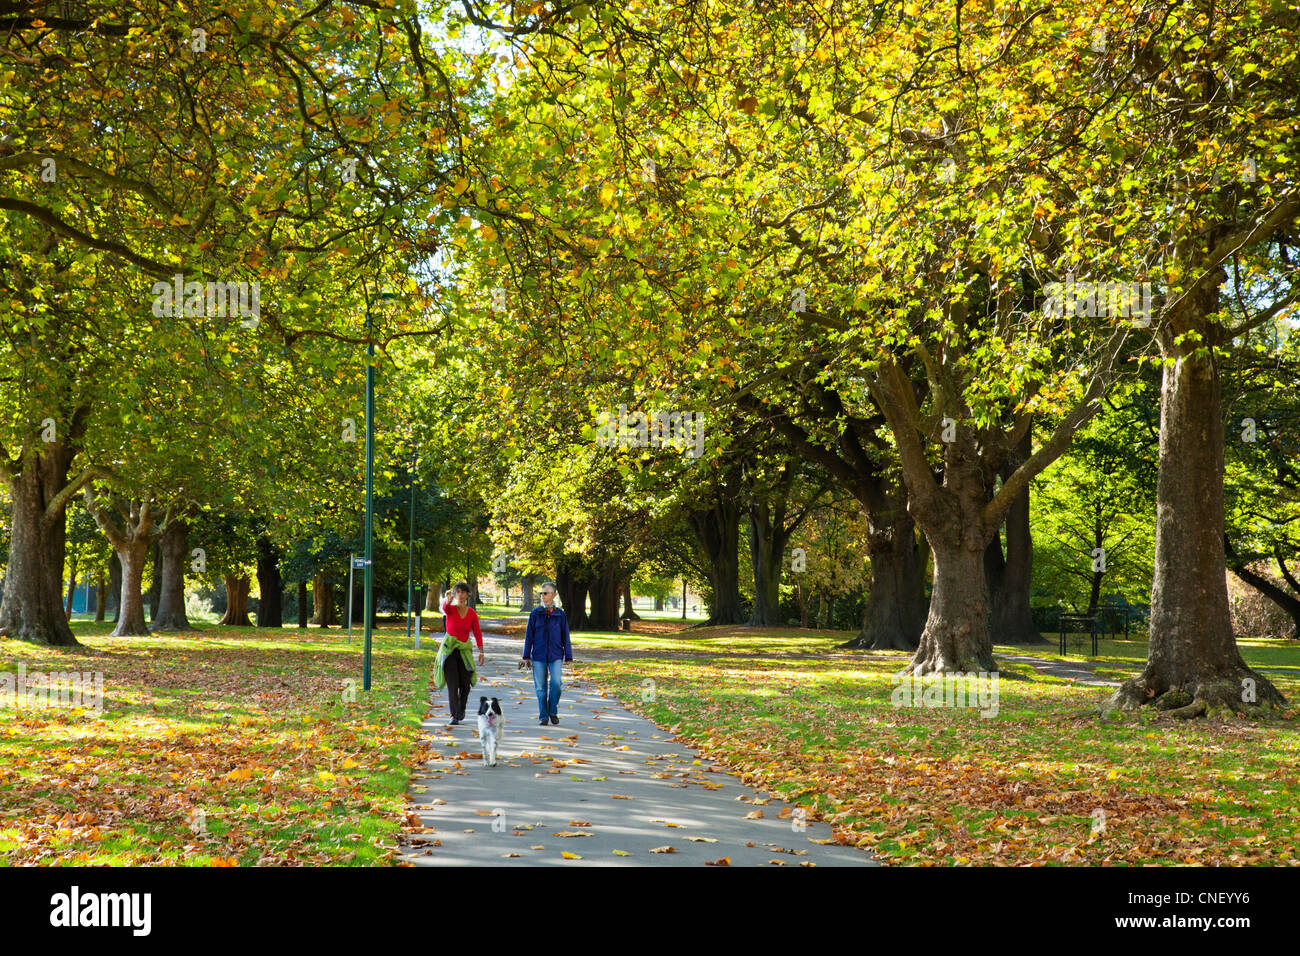 Hagley Park The Avenue in autumn,couple walking with dog, Christchurch, New Zealand. - Stock Image